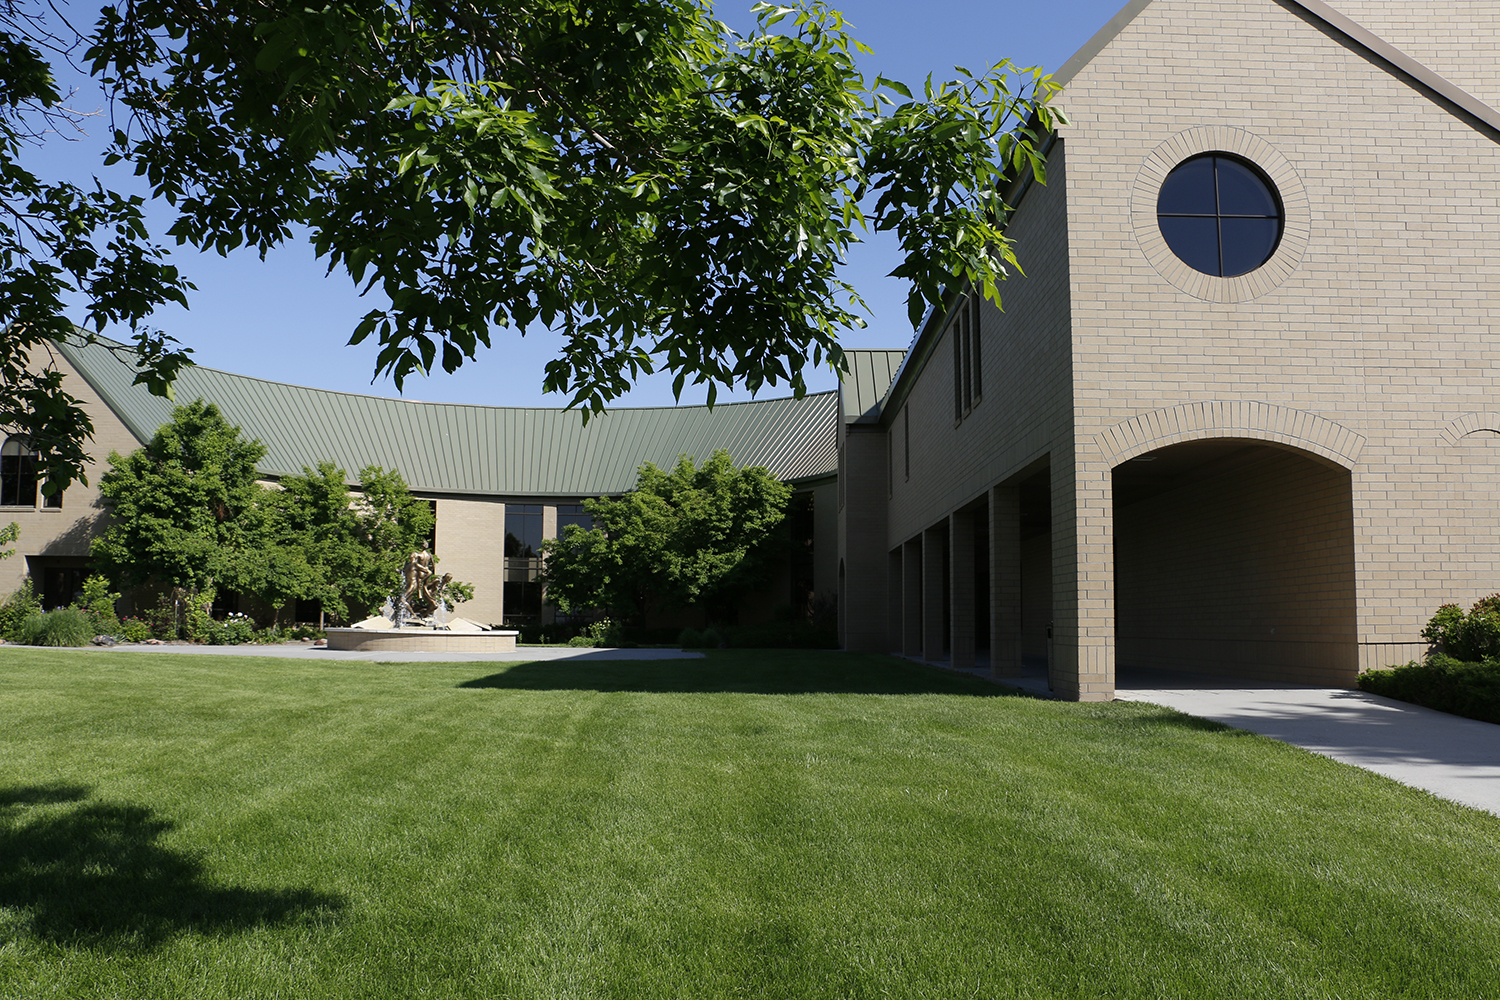 Main hall, central wyoming college